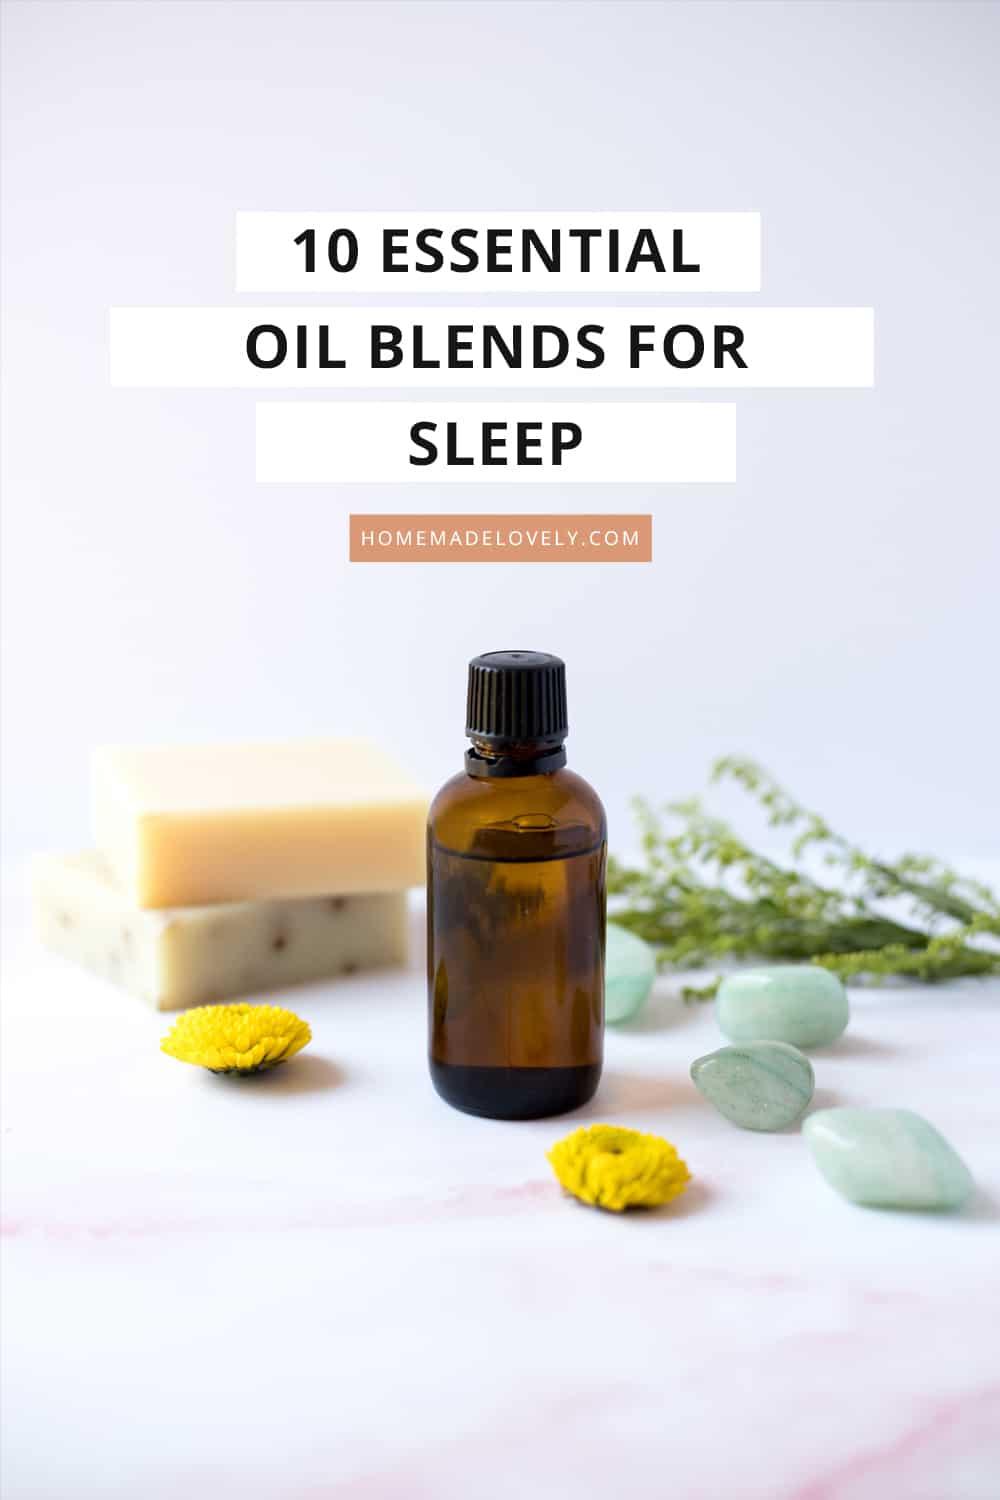 amber bottle with herbs and flower petals with text overlay that says 10 essential oil blends for sleep